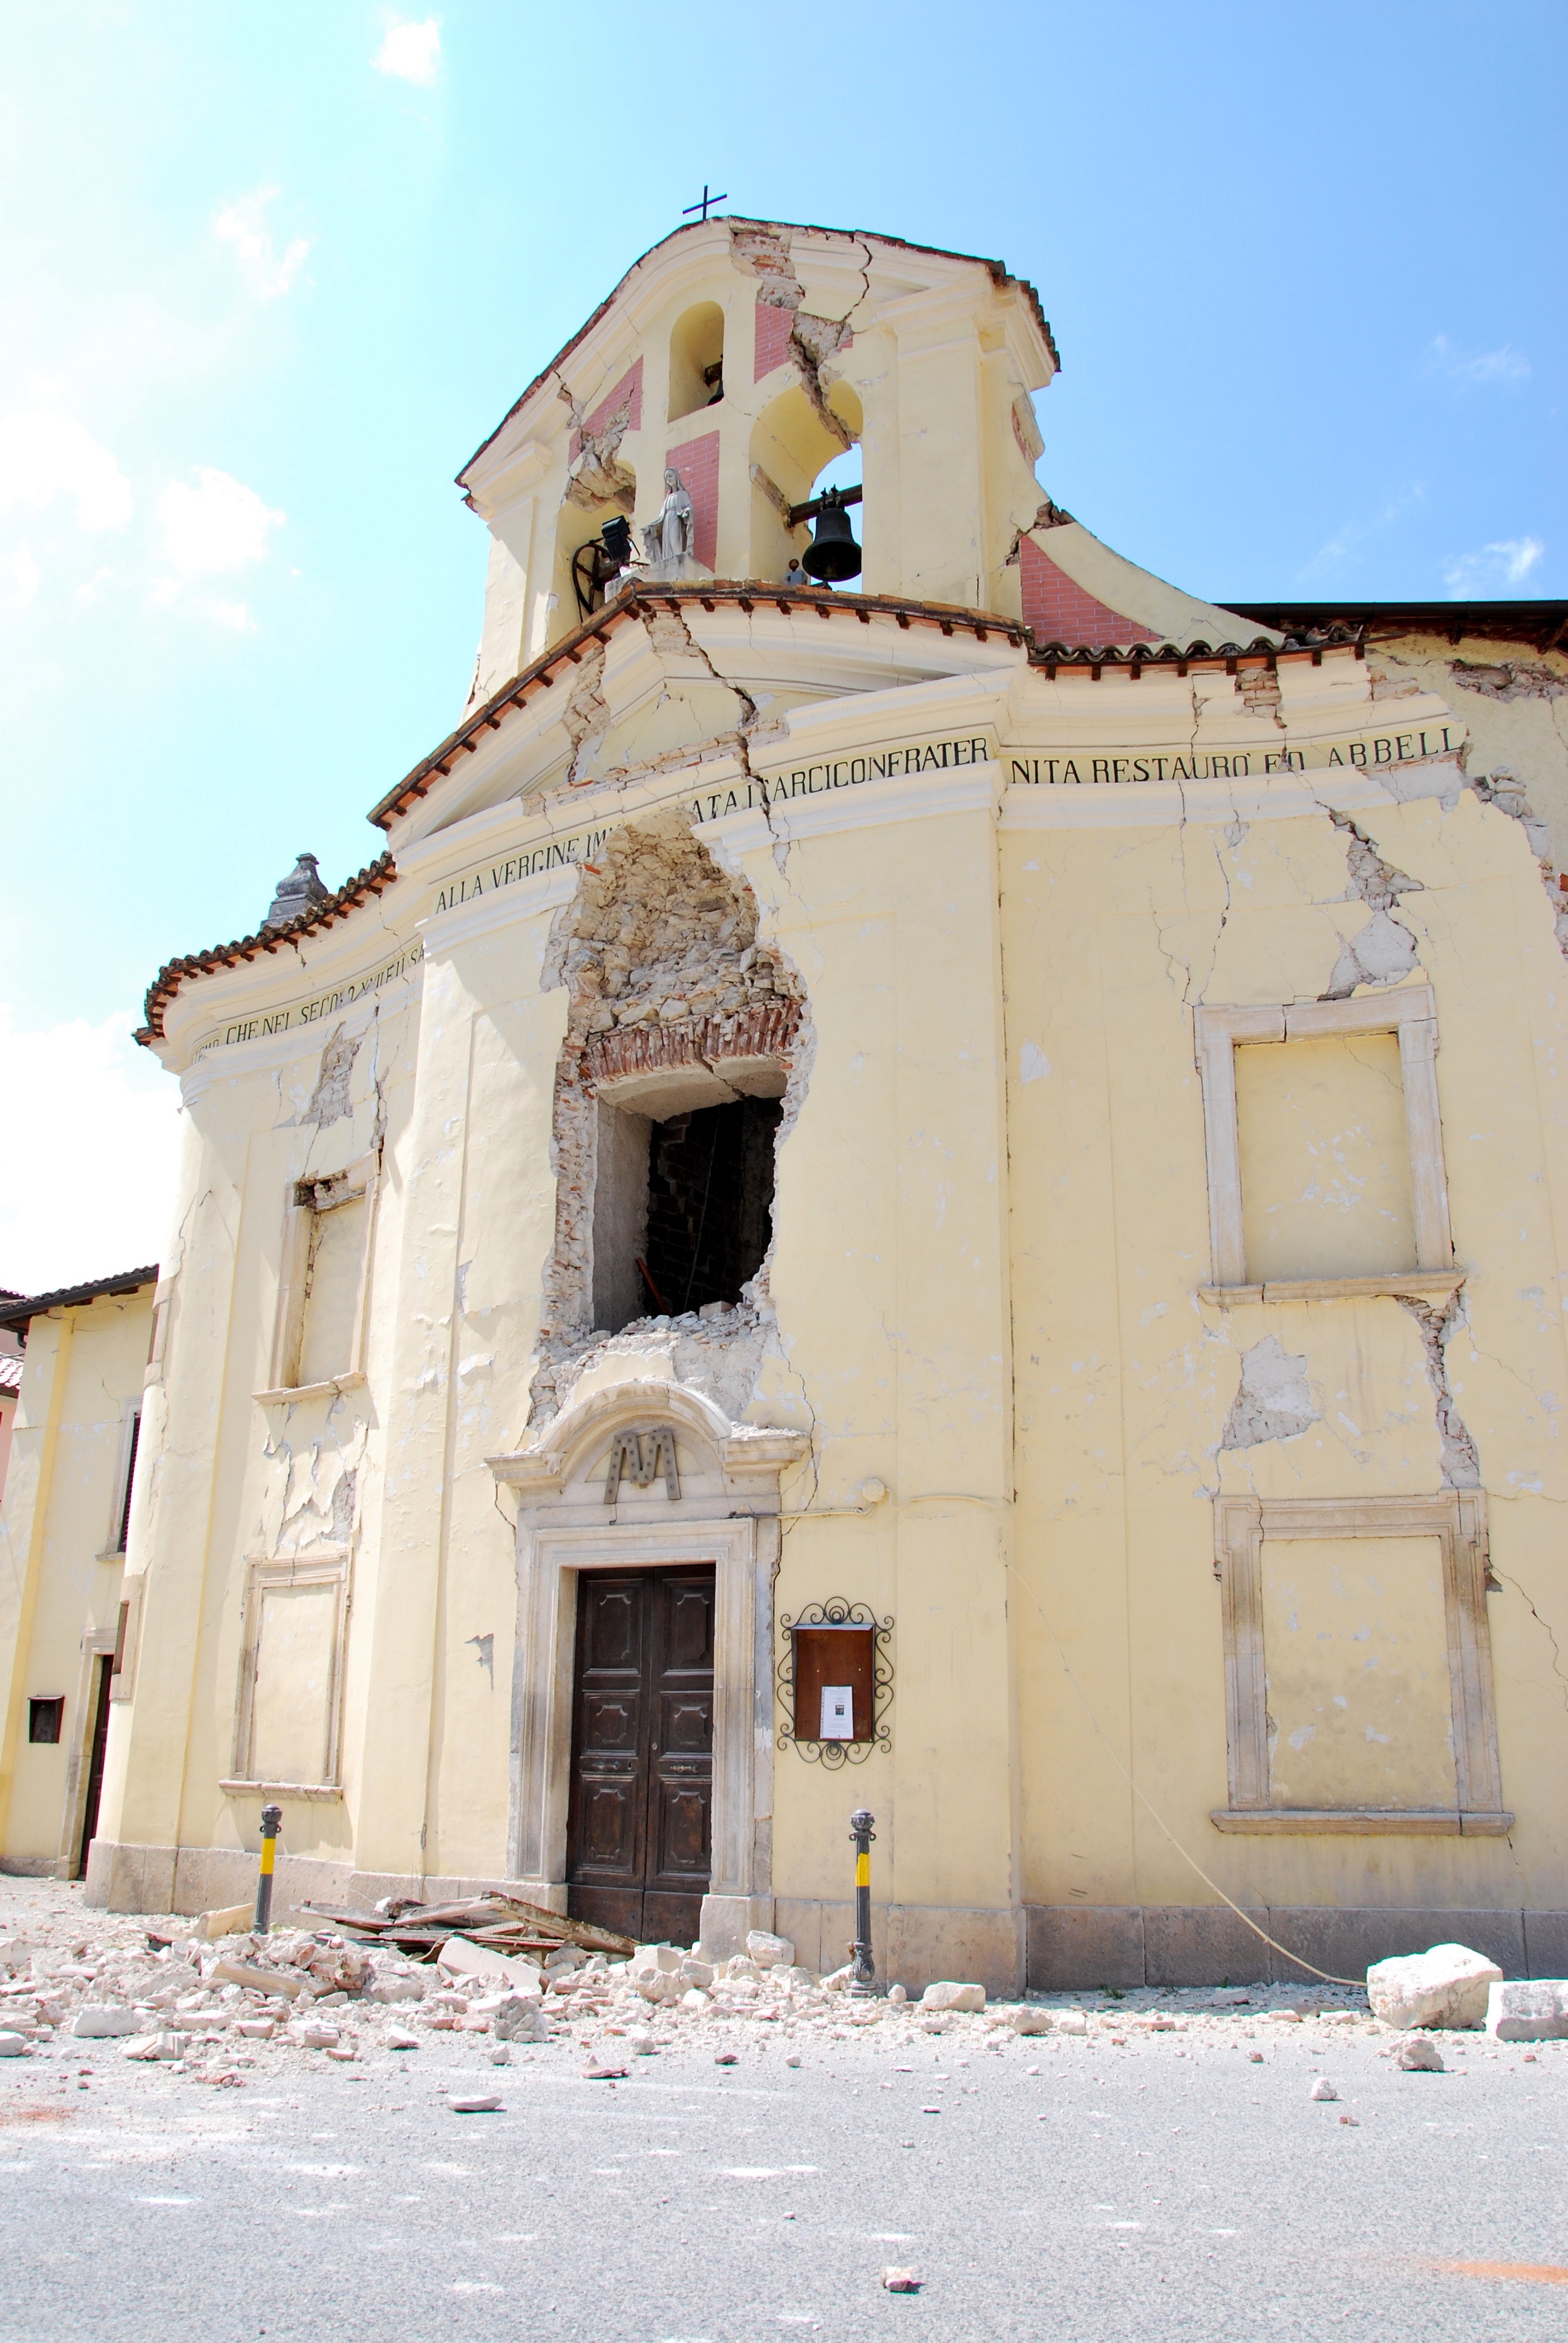 By Flickr user pablo72, the Santa Maria Church in Paganica, damaged by the 2009 Earthquake